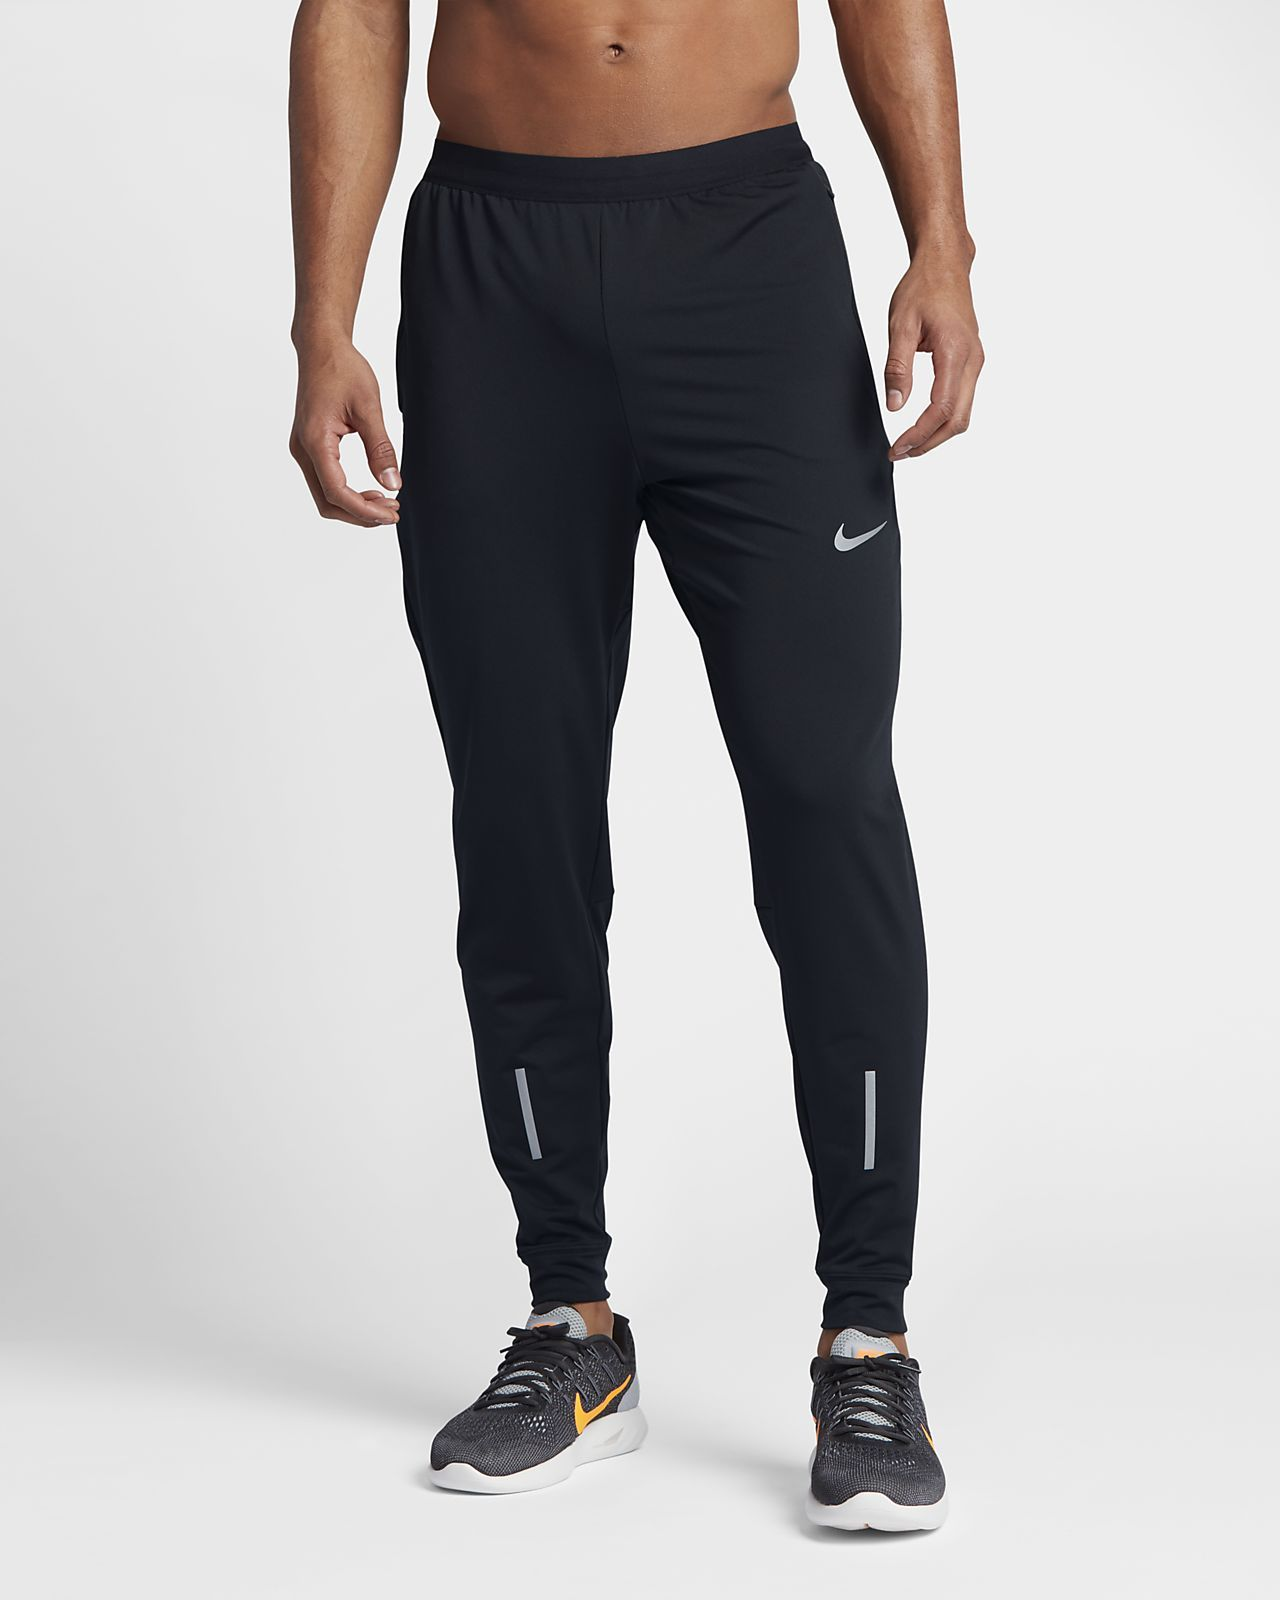 nike completi fitness